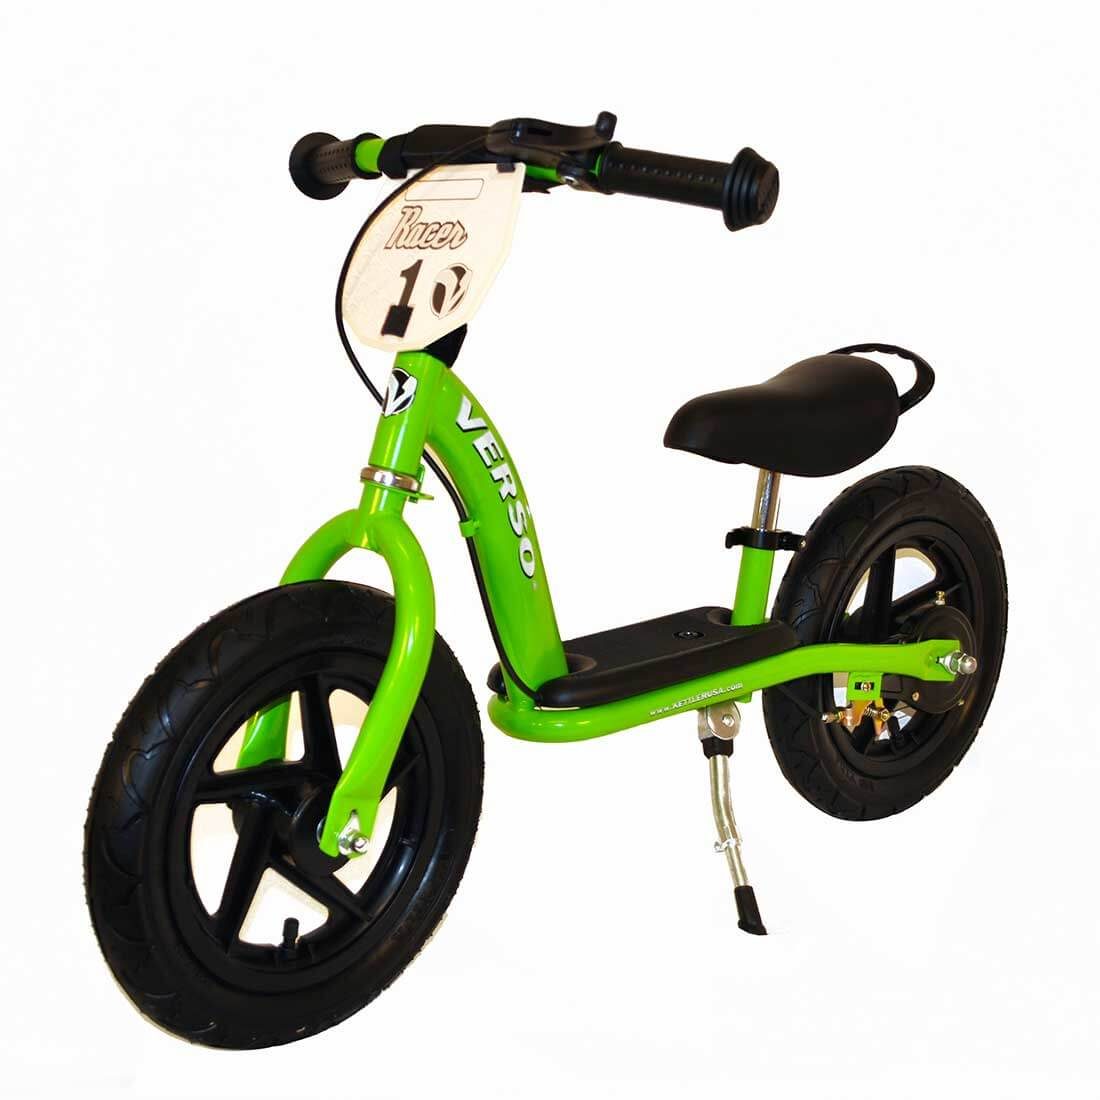 12 inch Racer Balance Bike with Push-Bar